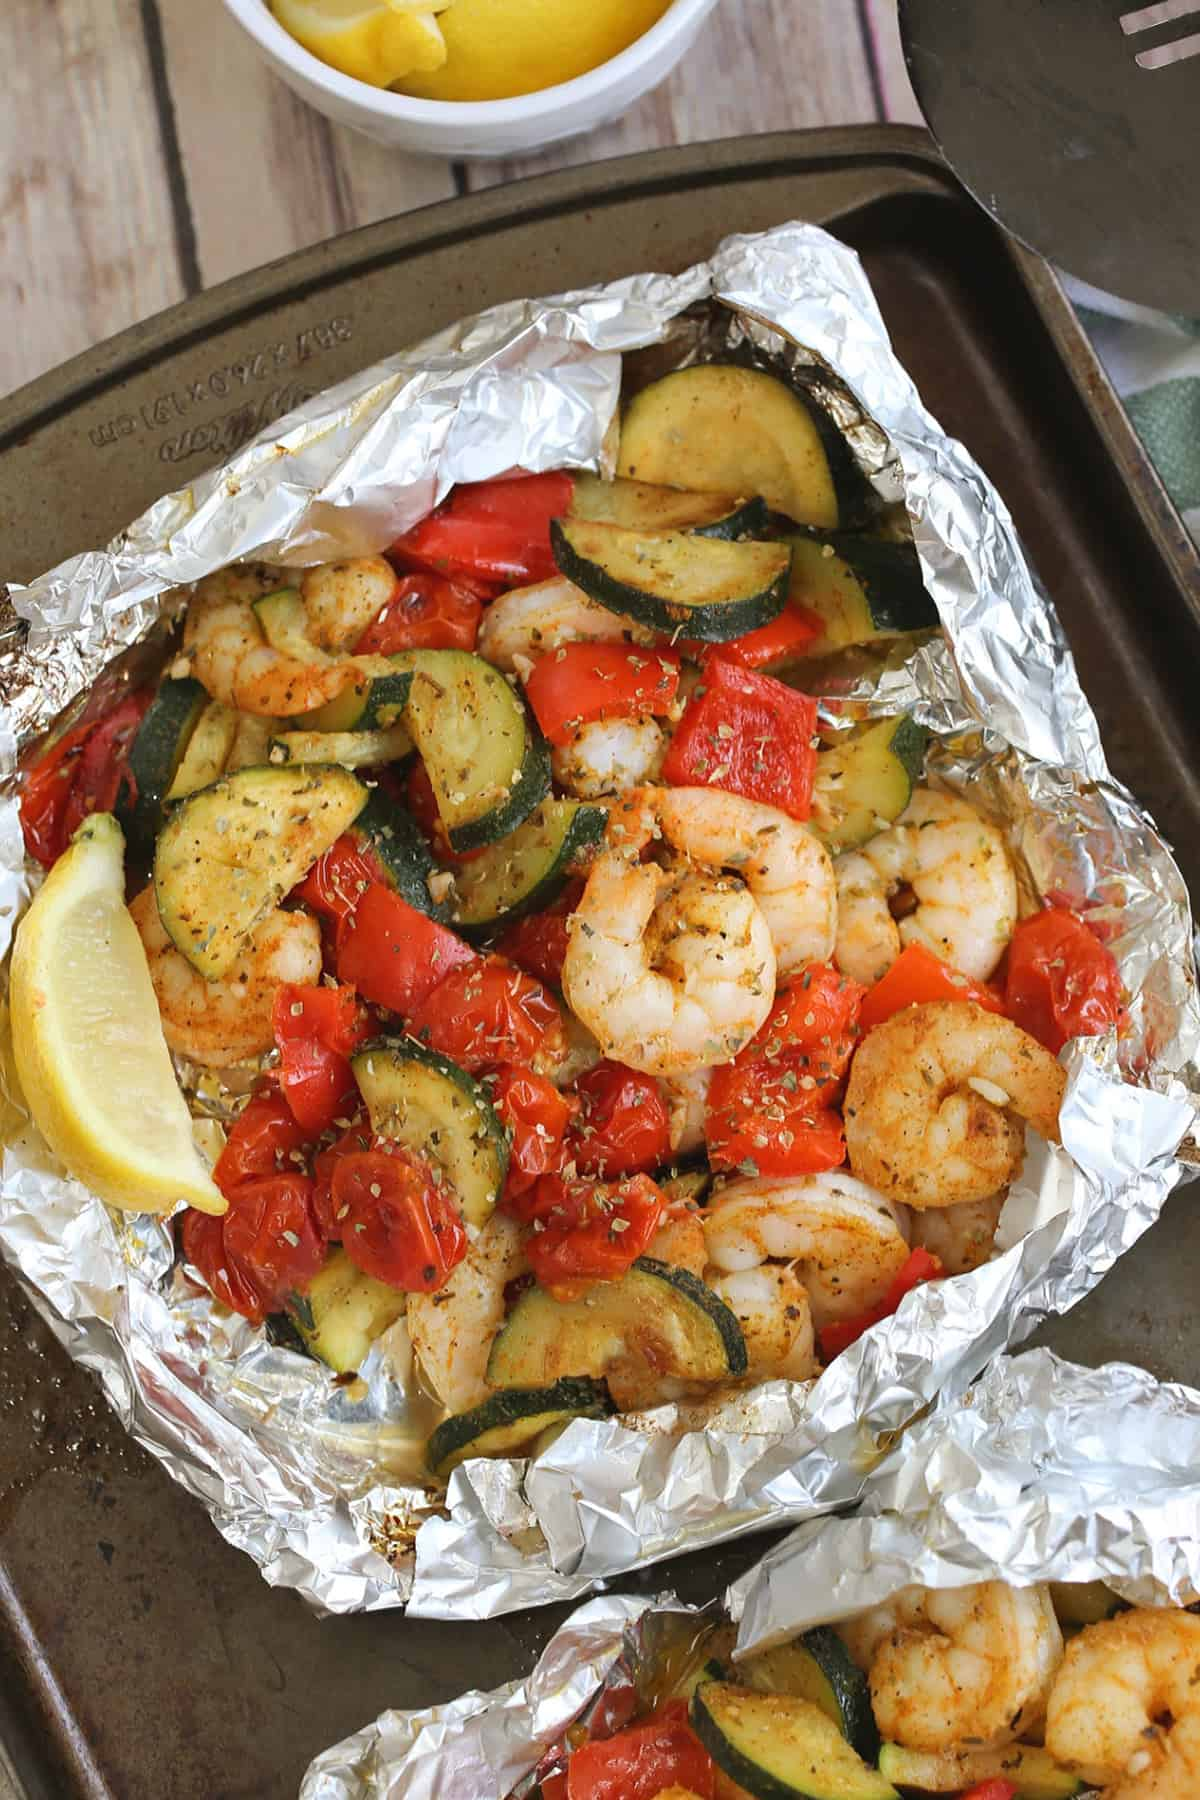 spiced shrimp and vegetables in a foil package